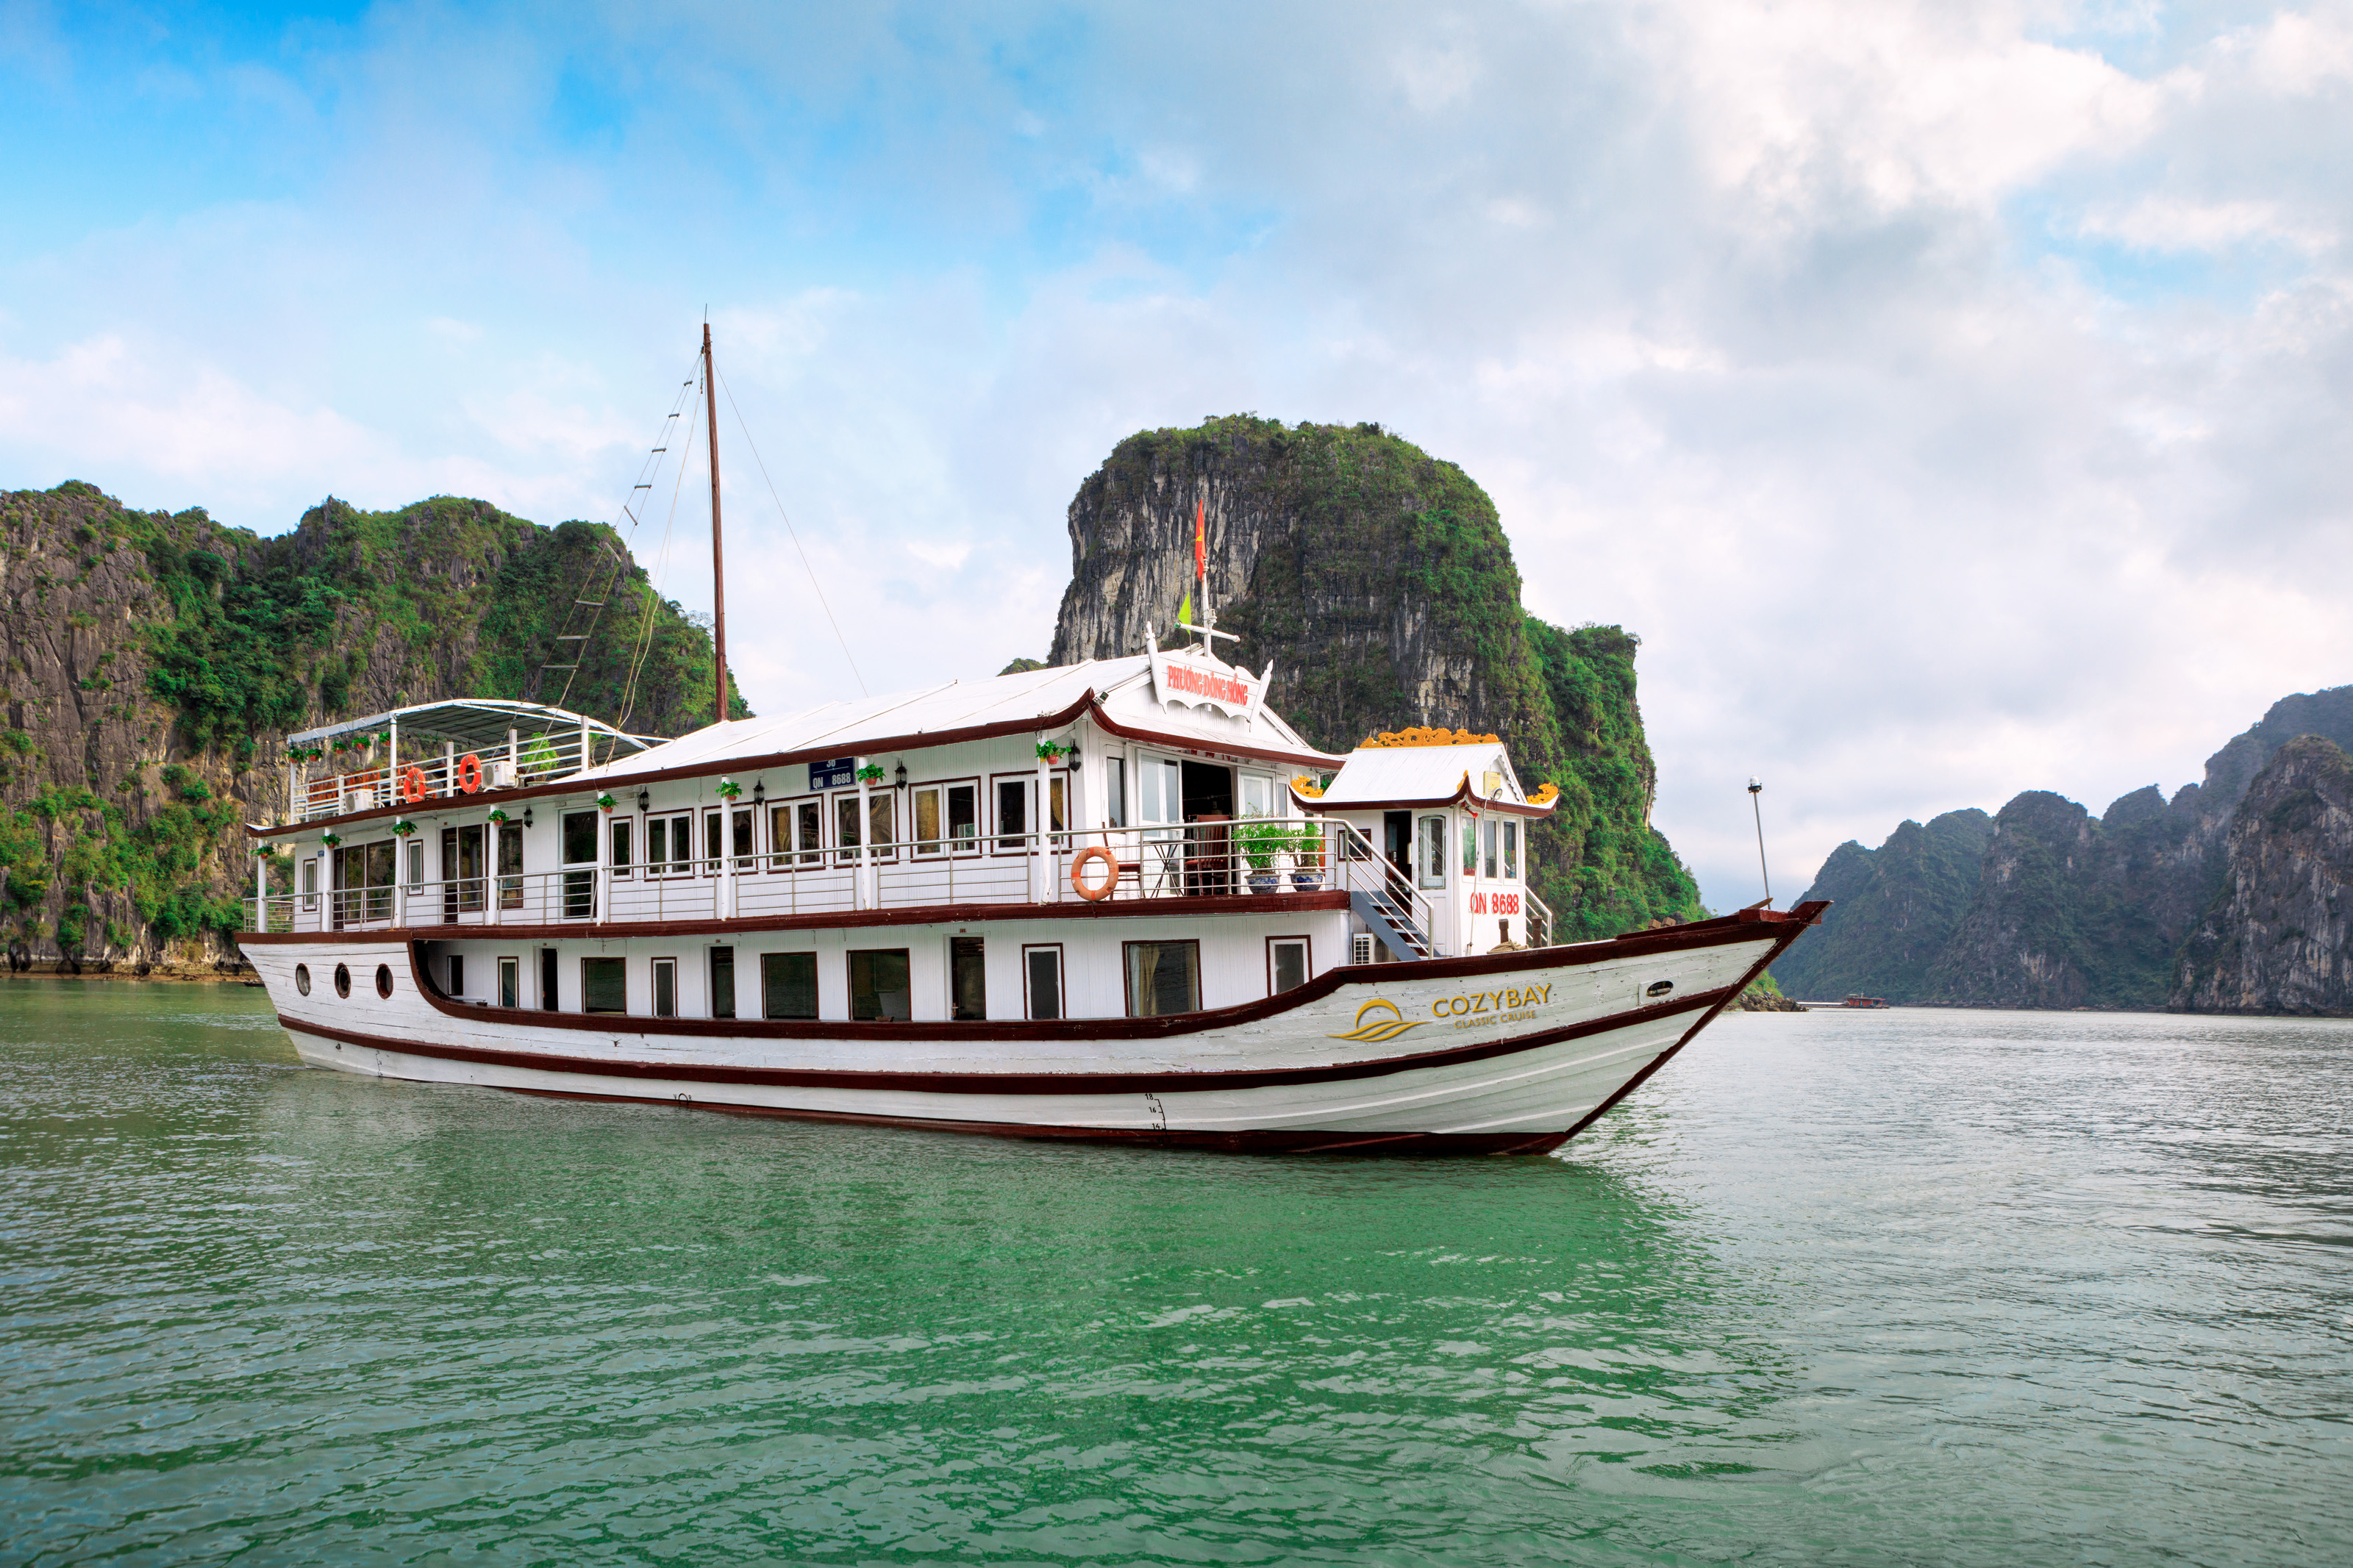 halong Bay, cozybay classic cruise Overview